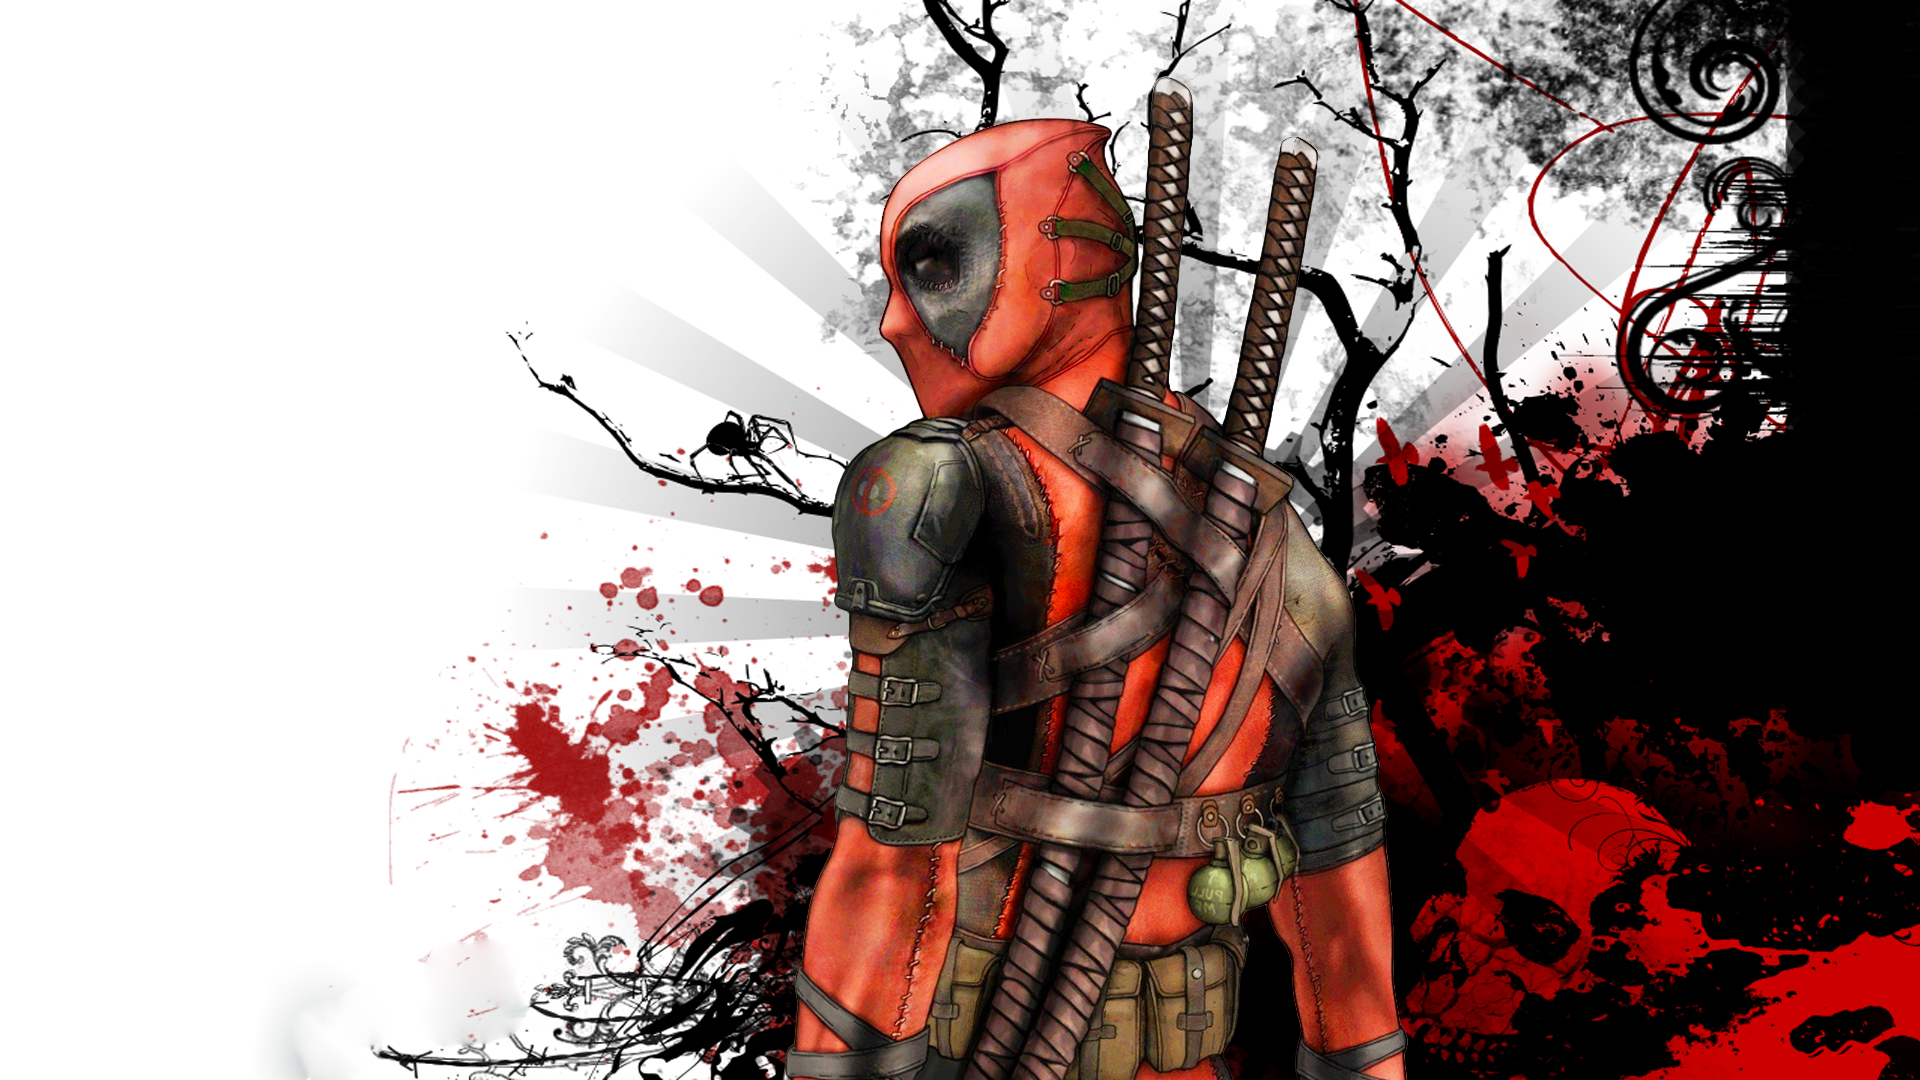 Deadpool Computer Wallpapers Desktop Backgrounds 1920x1080 ID 1920x1080